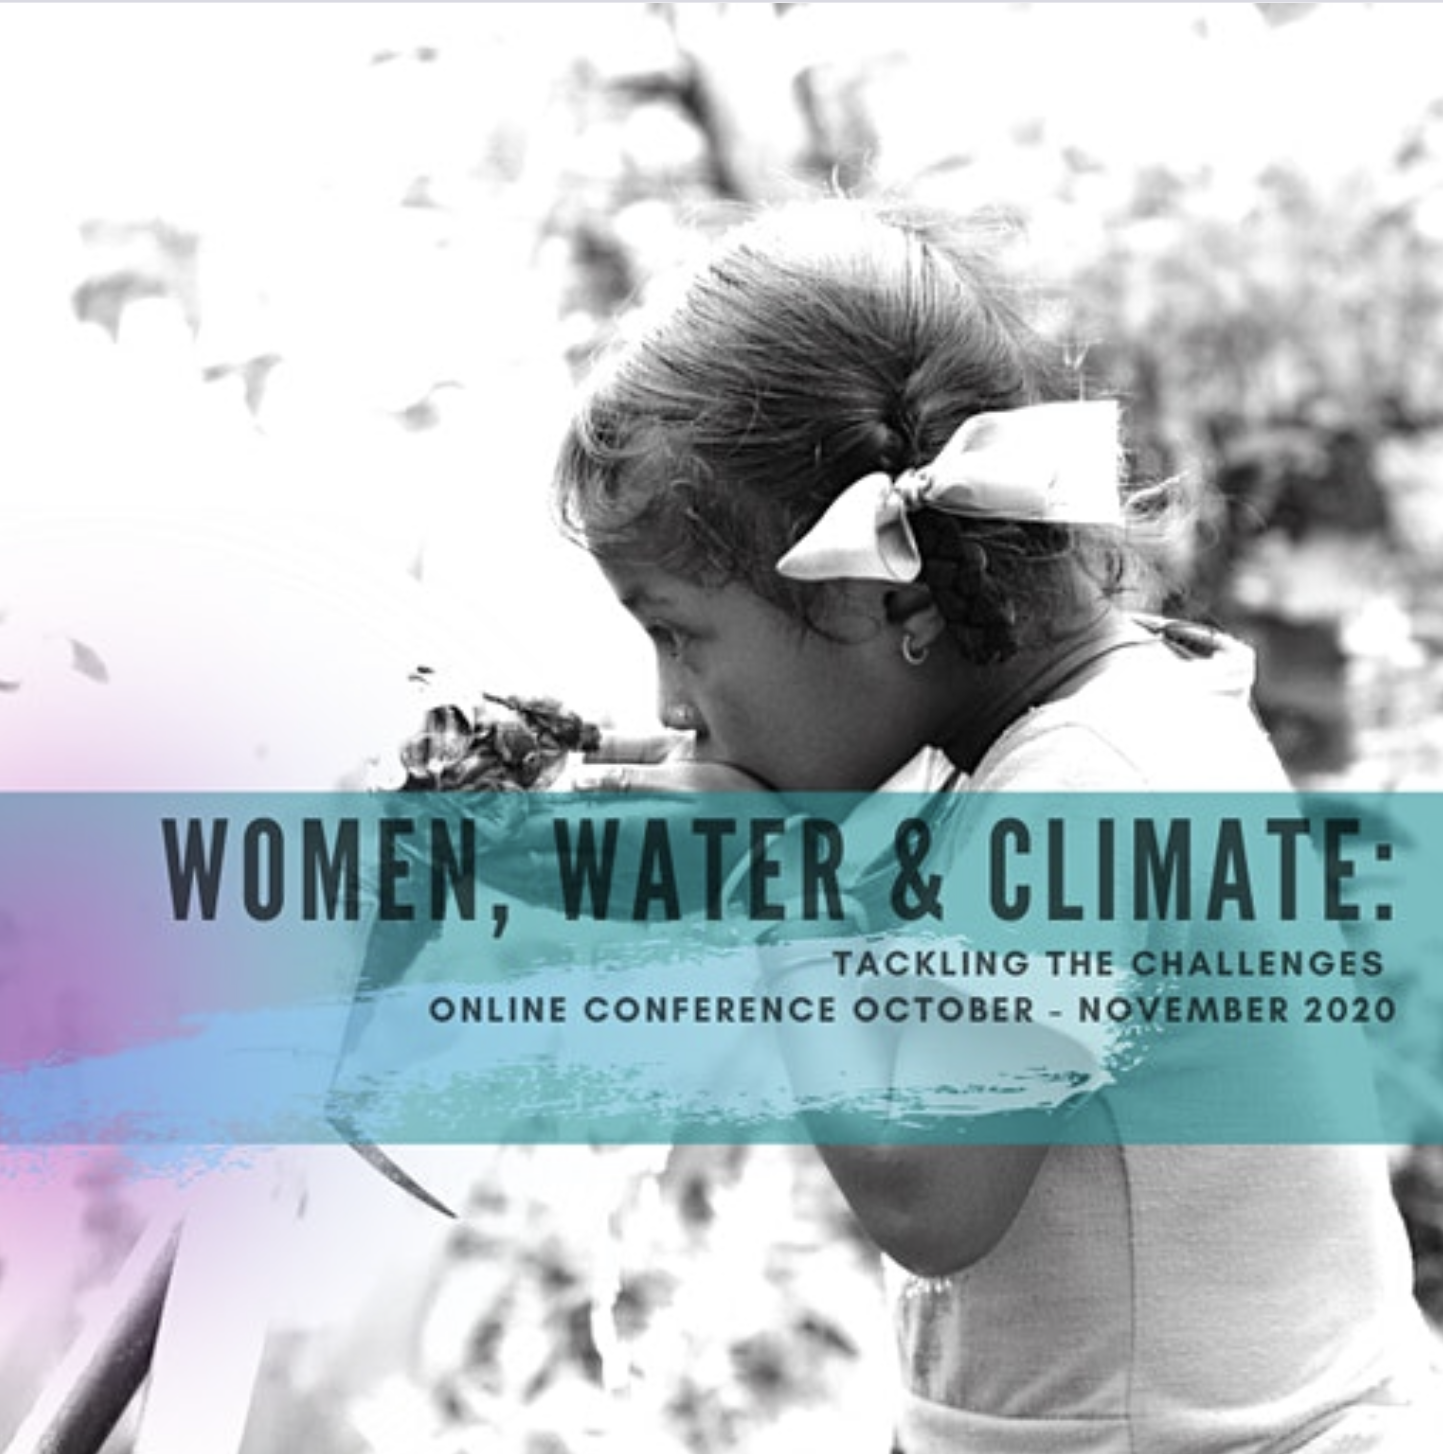 Women, Water, Climate: Tackling the Challenges